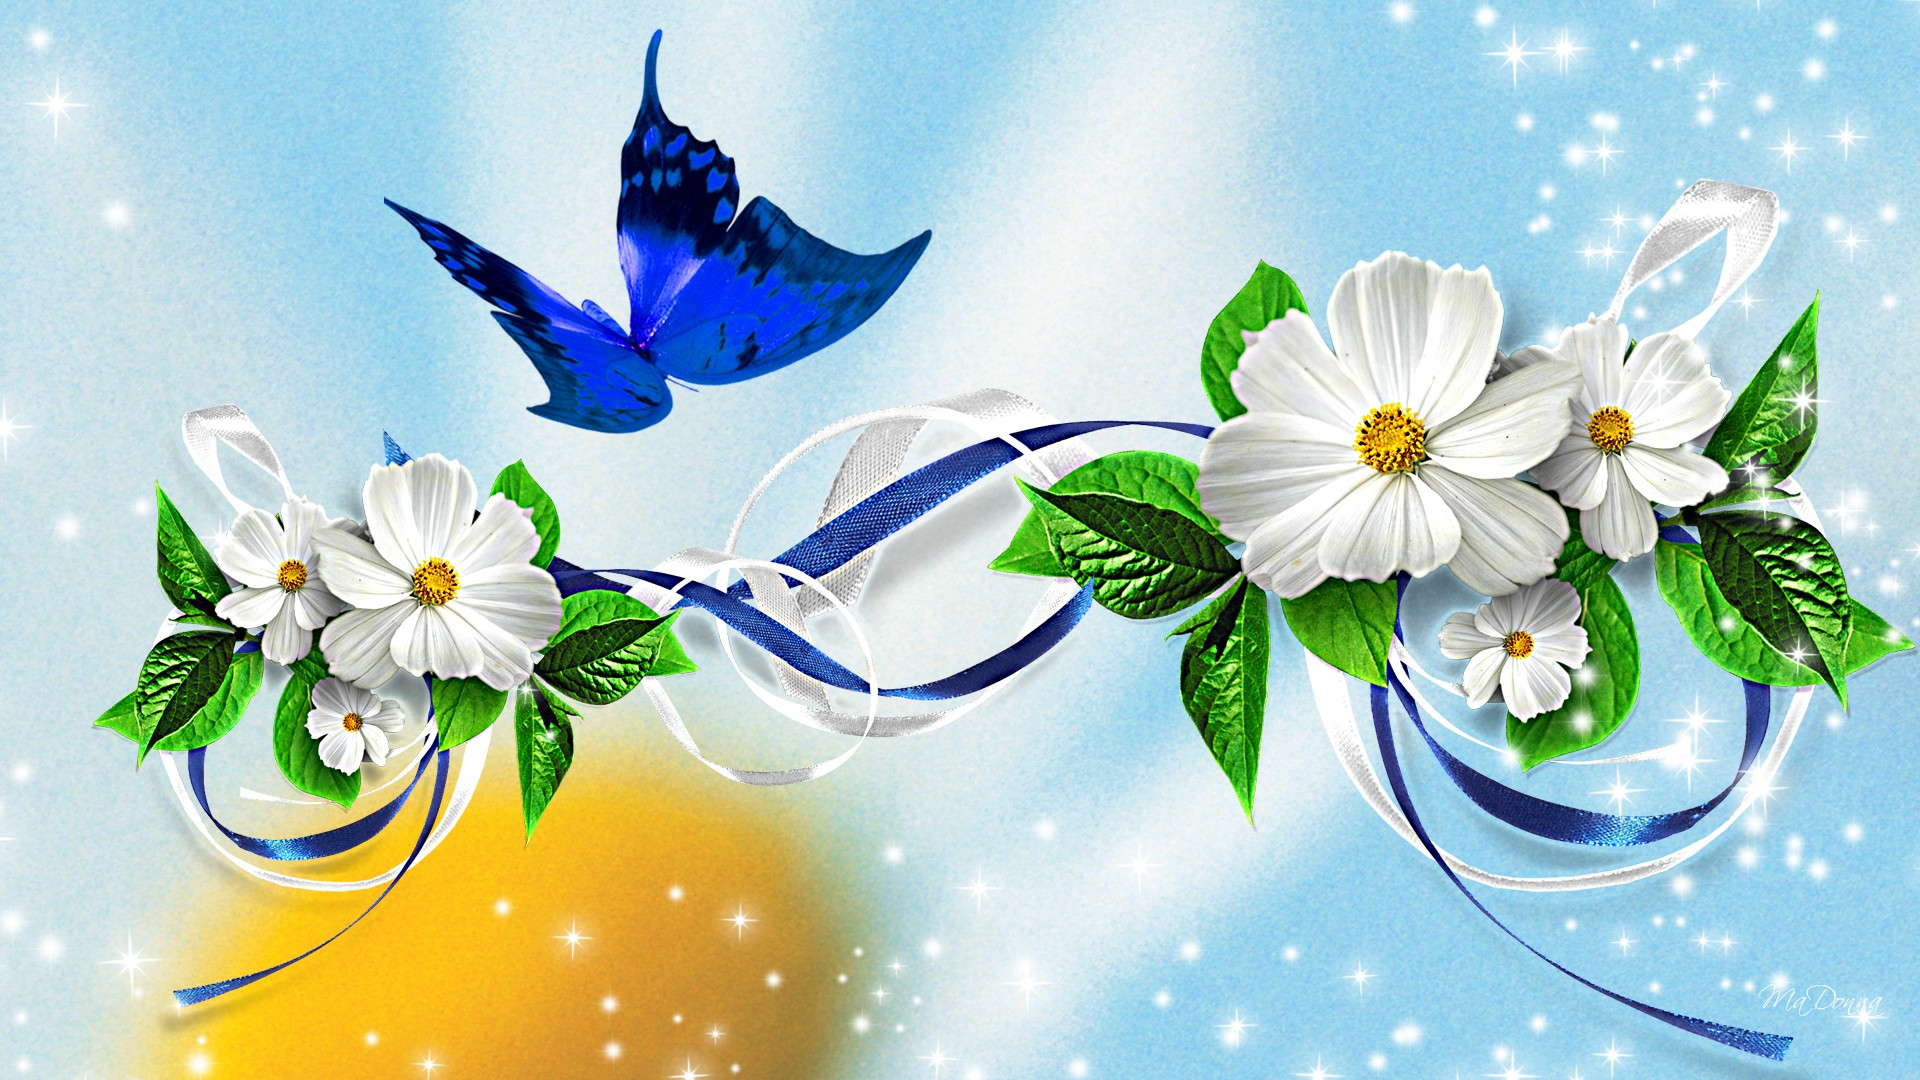 50 Beautiful Flower Wallpaper Images For Download 1920x1080